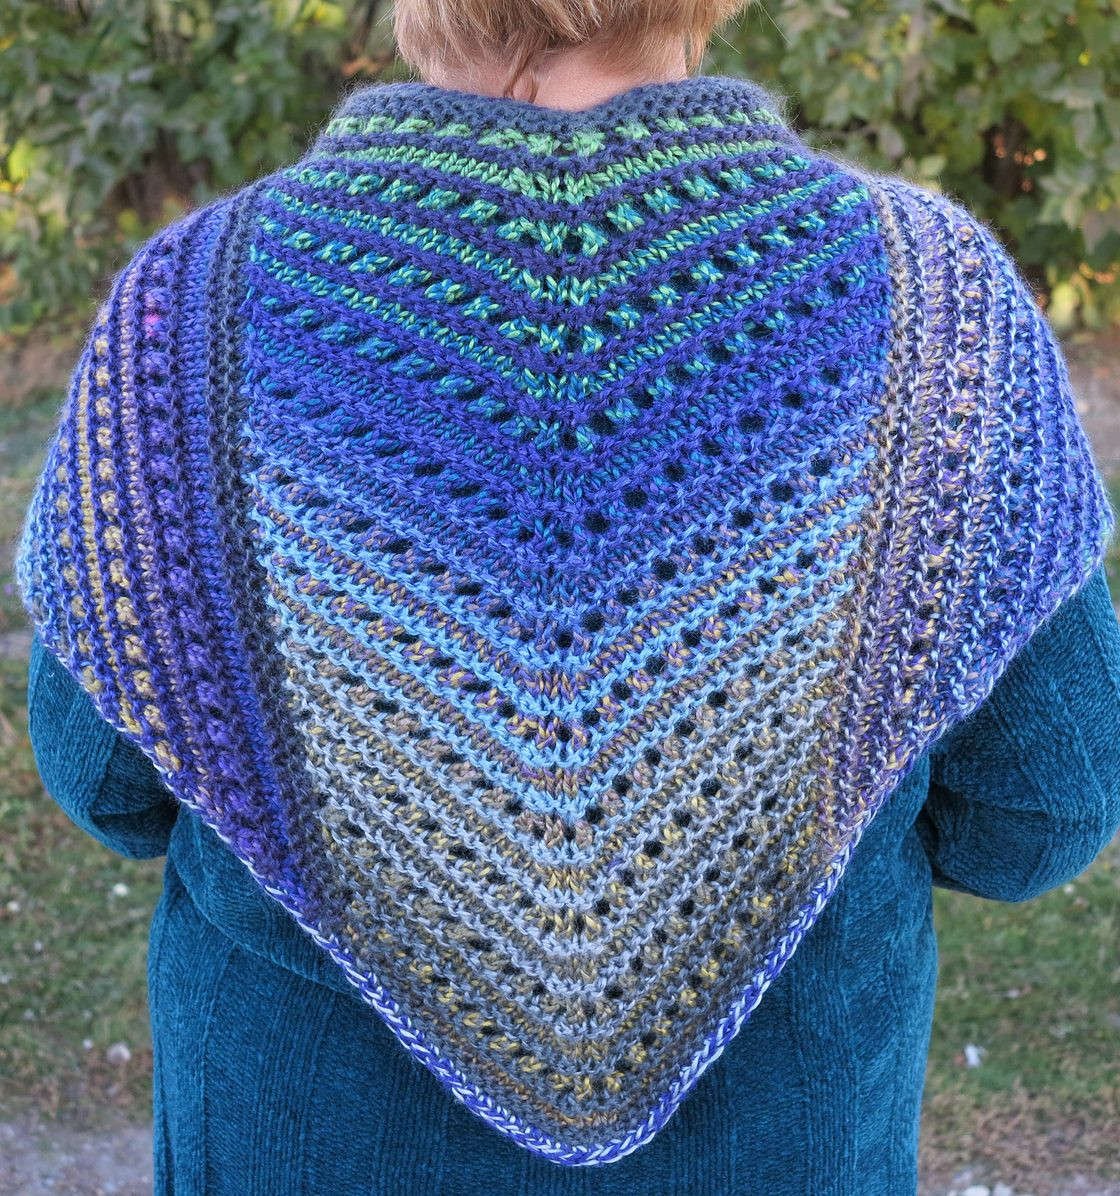 Knitting Projects Lovely Shawls for Bulky Yarn Knitting Patterns Of Top 45 Ideas Knitting Projects